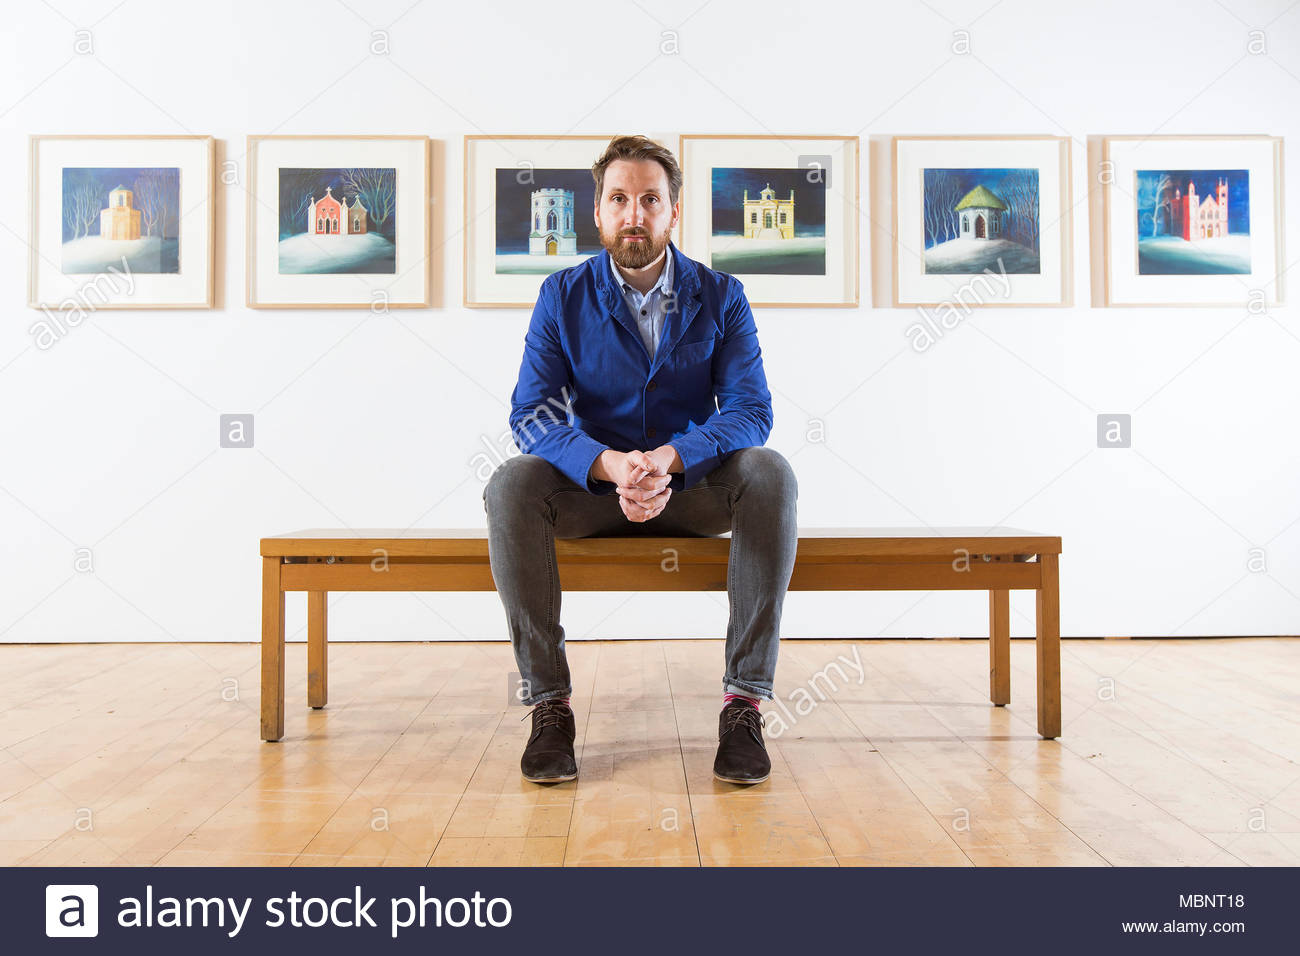 Artist Ed Kluz at the opening of his exhibition 'Folly-fanciful buildings of Britain' at Yorkshire Sculpture Park. - Stock Image